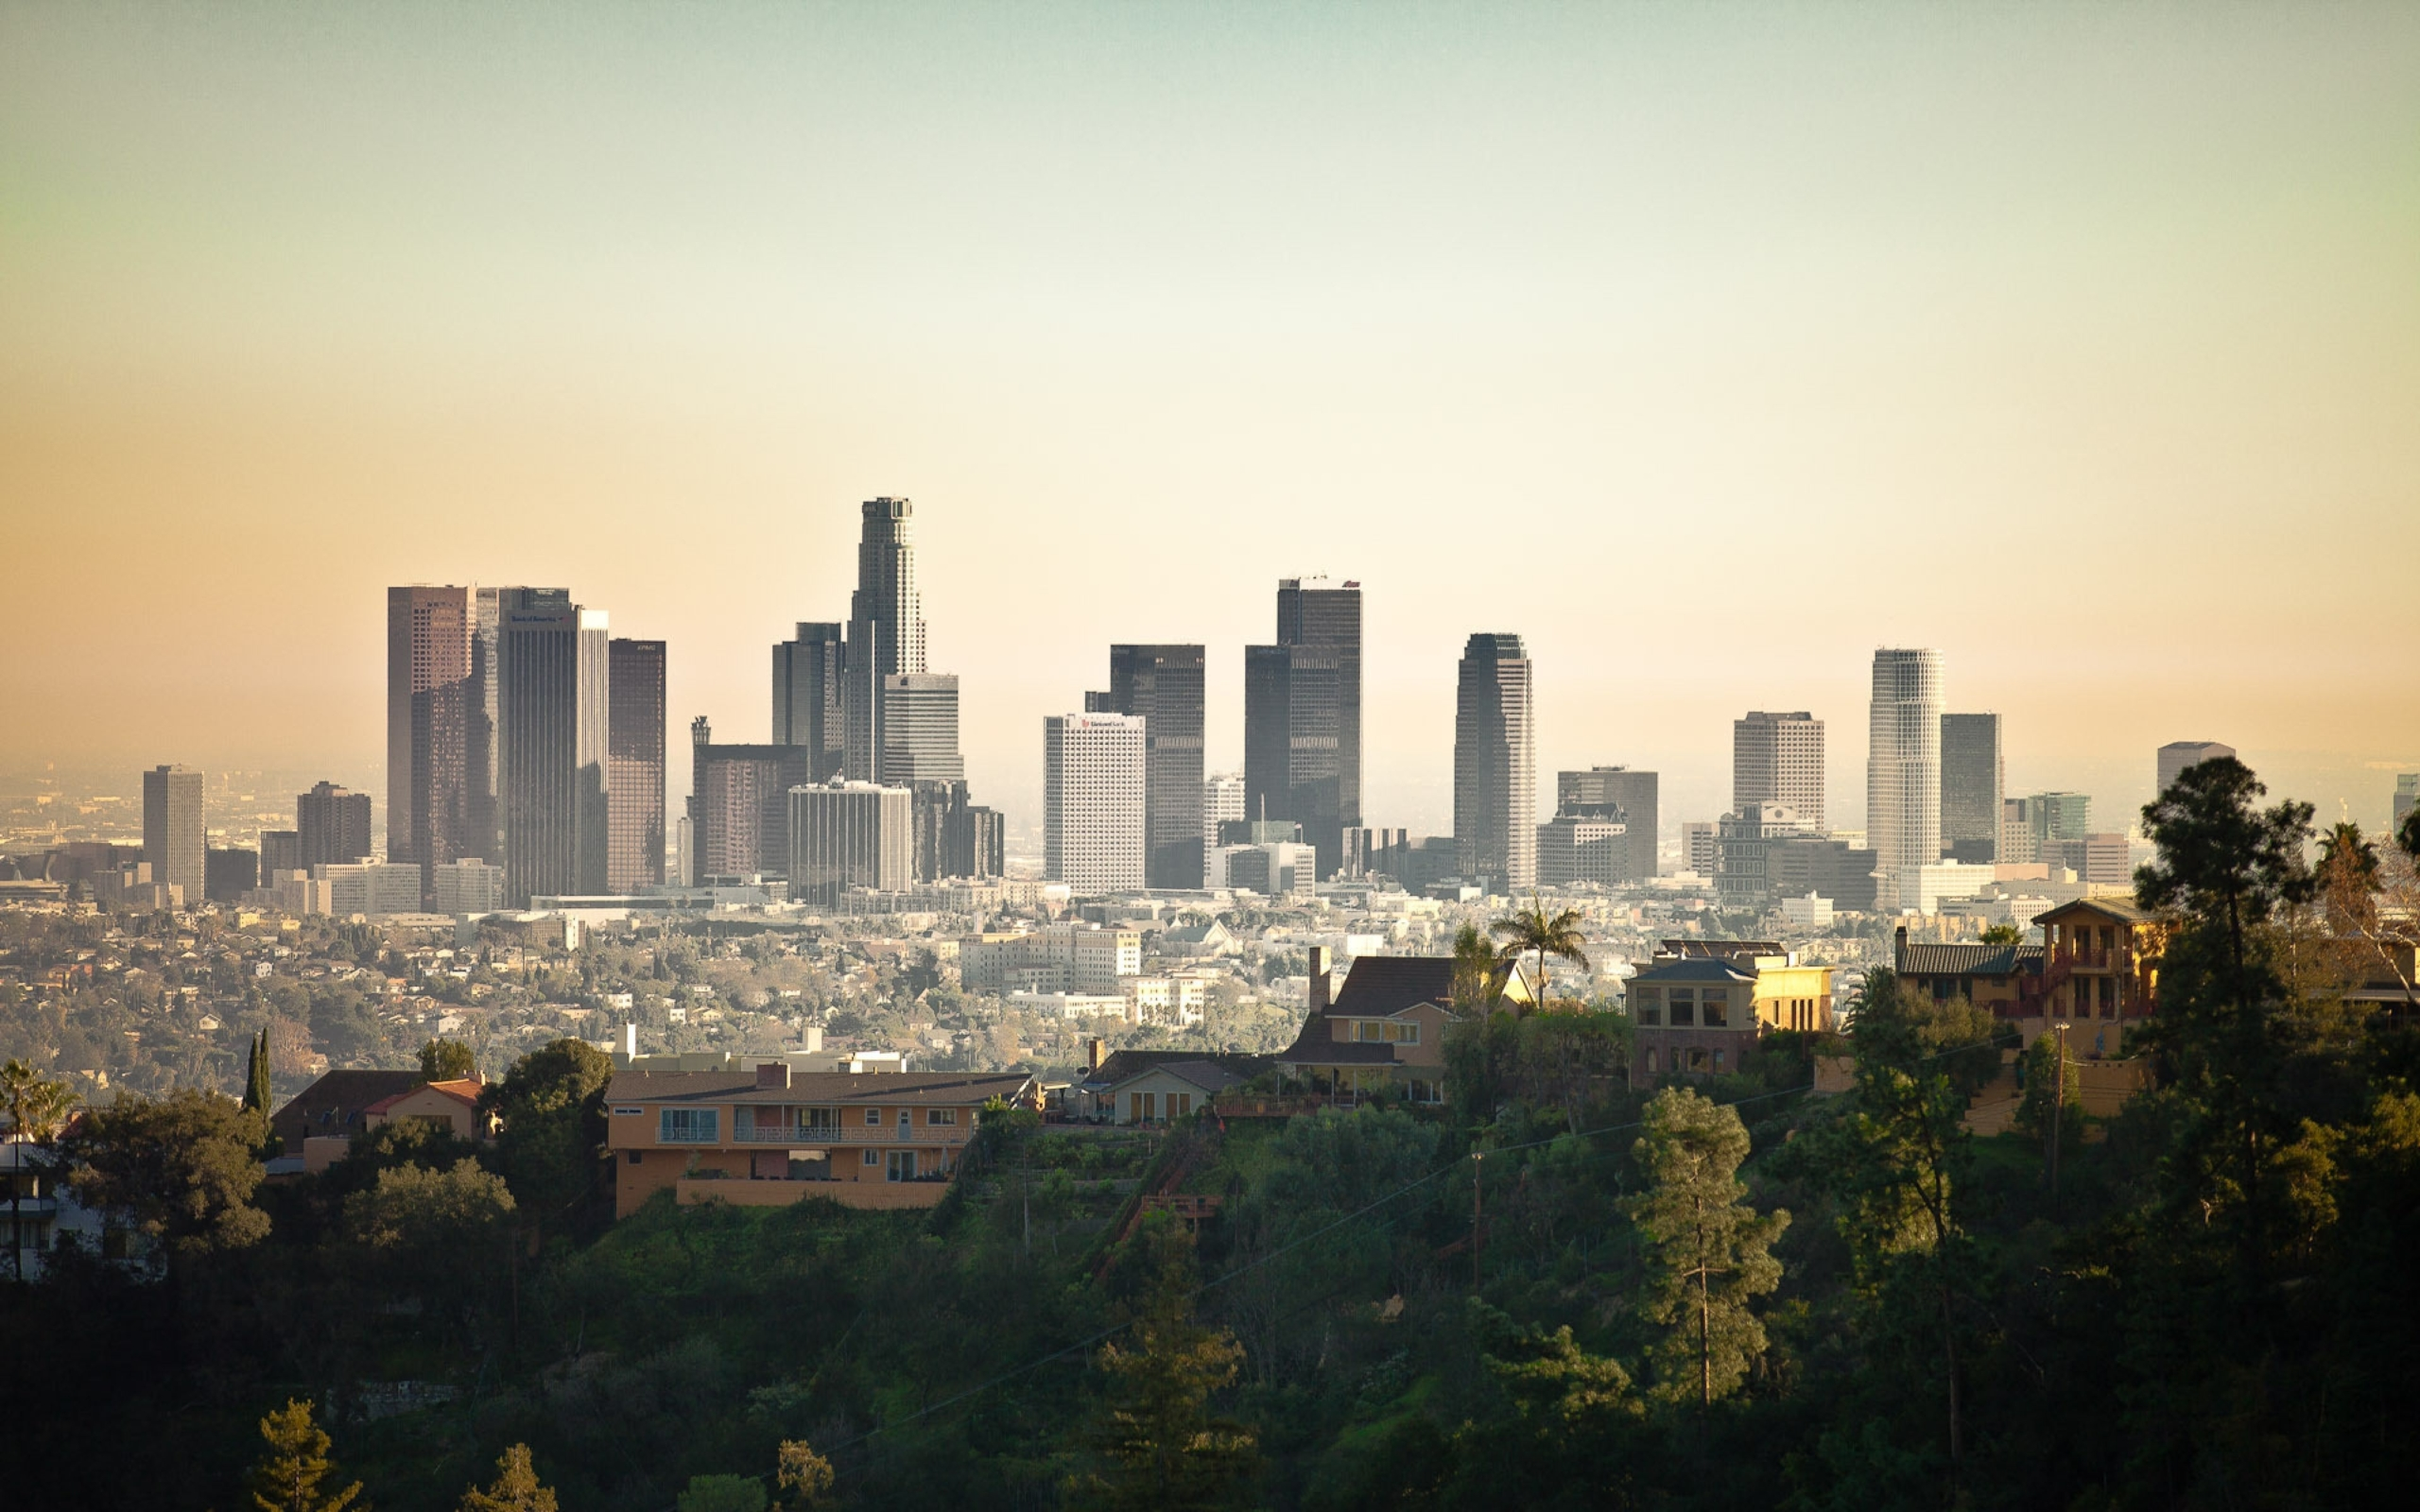 Los Angeles Wallpaper: Get the Best in High Quality and Affordable Prices